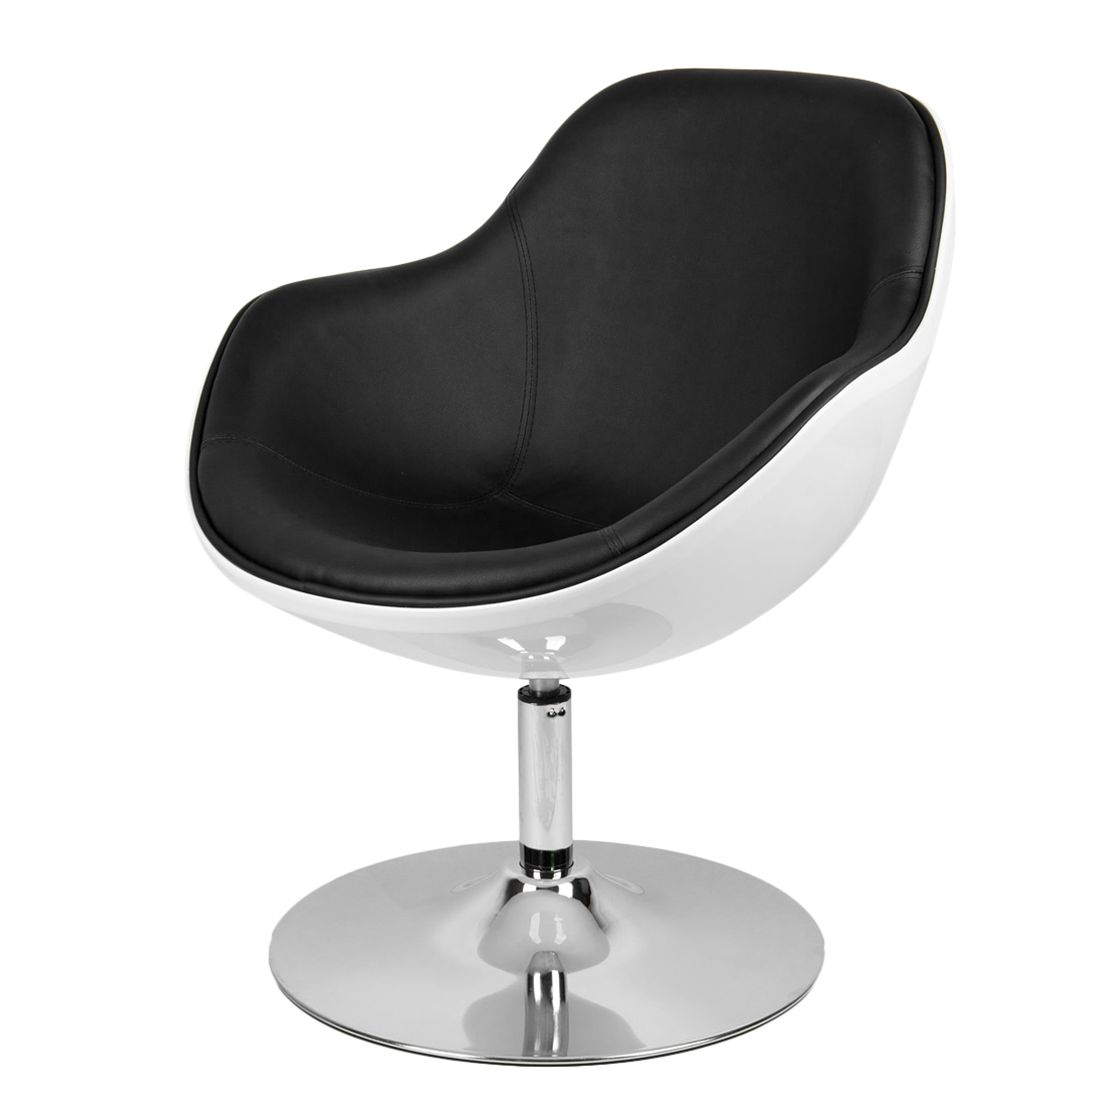 Lounge sessel schwarz  Sessel Cartago Kunstleder | Home24